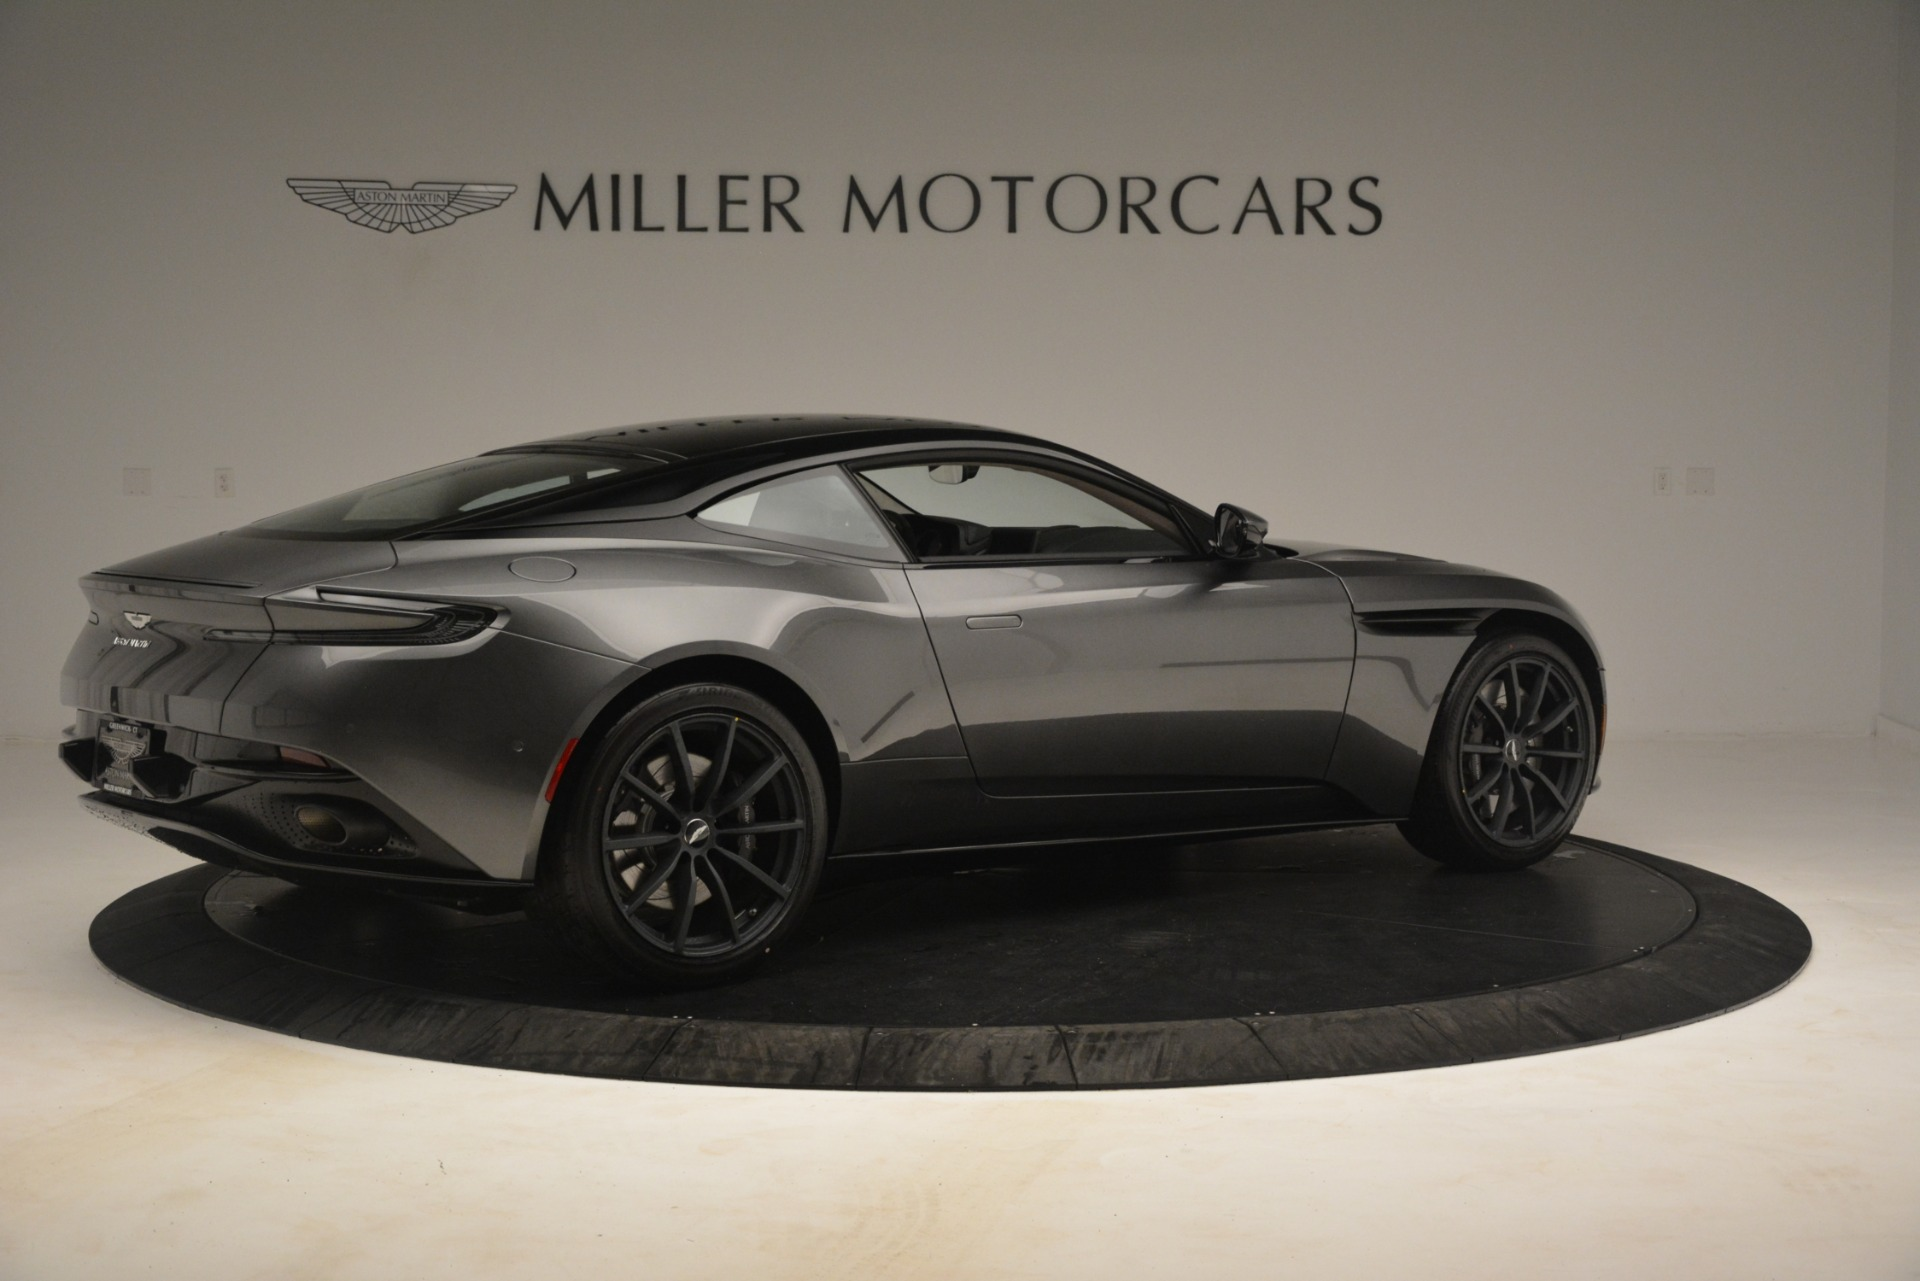 New 2019 Aston Martin DB11 V12 AMR Coupe For Sale In Westport, CT 3123_p8